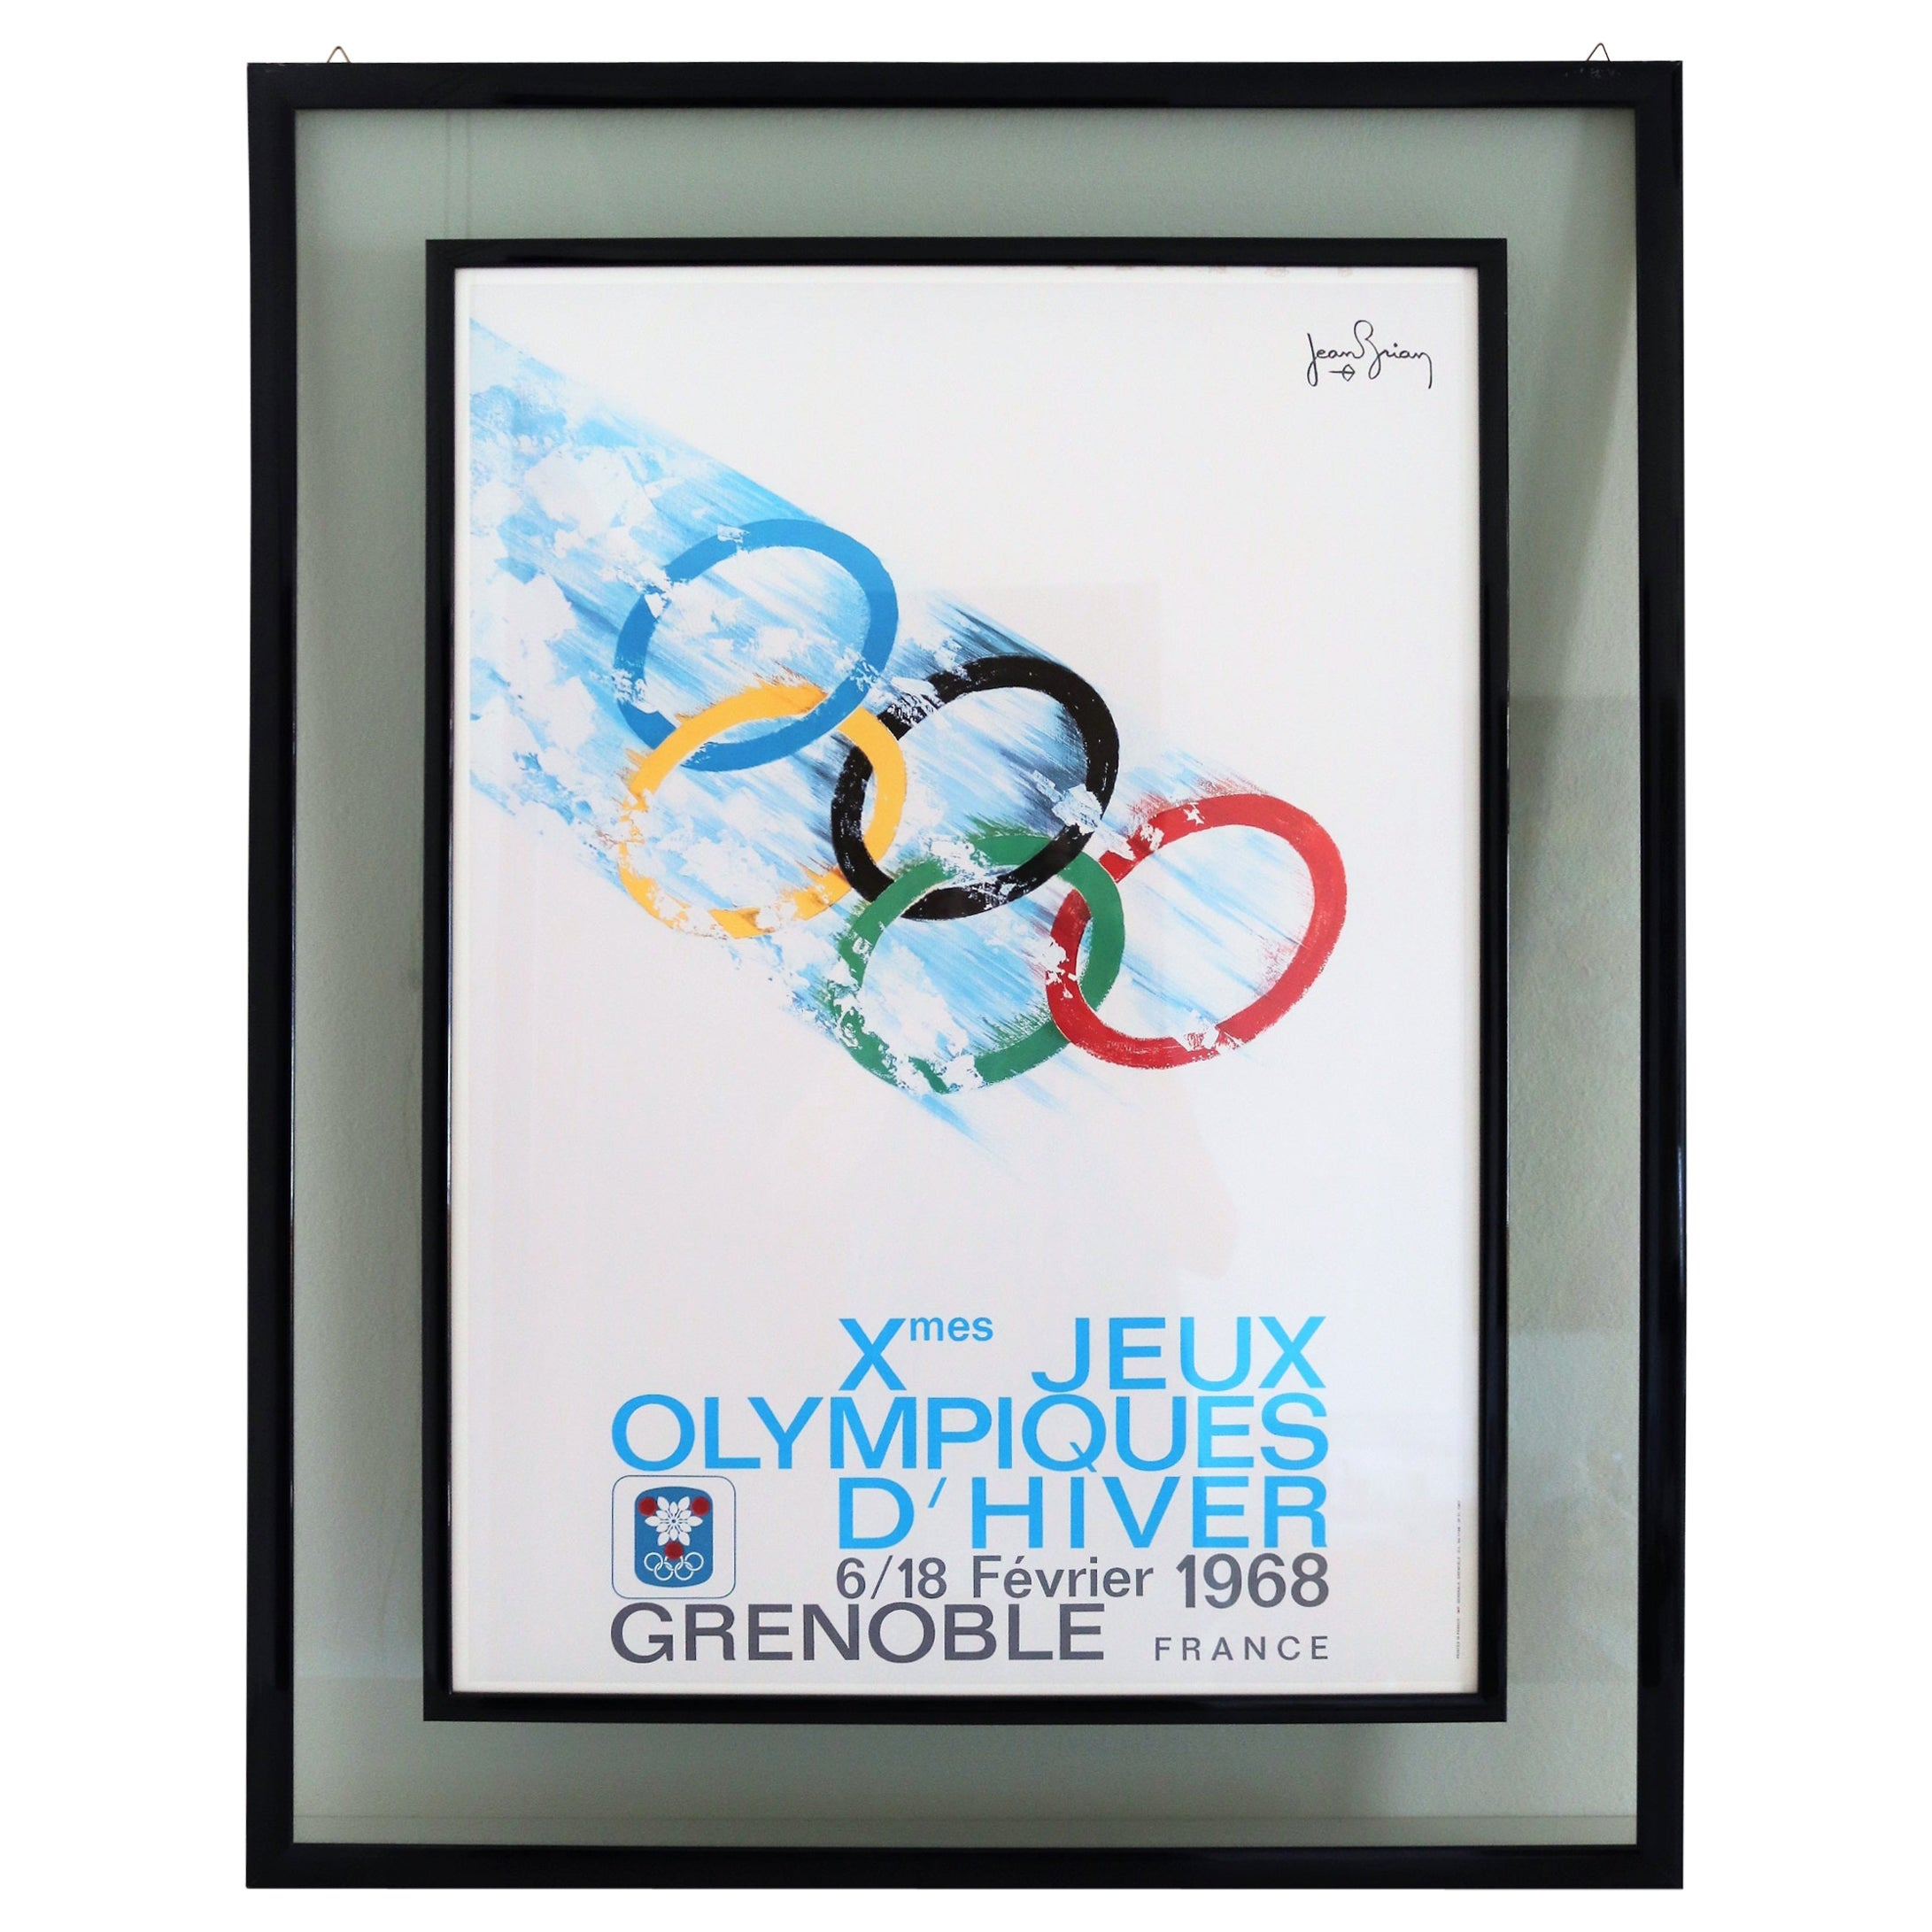 Vintage Poster Olympic Games Grenoble, France, 1968 by Jean Brian, Double Framed